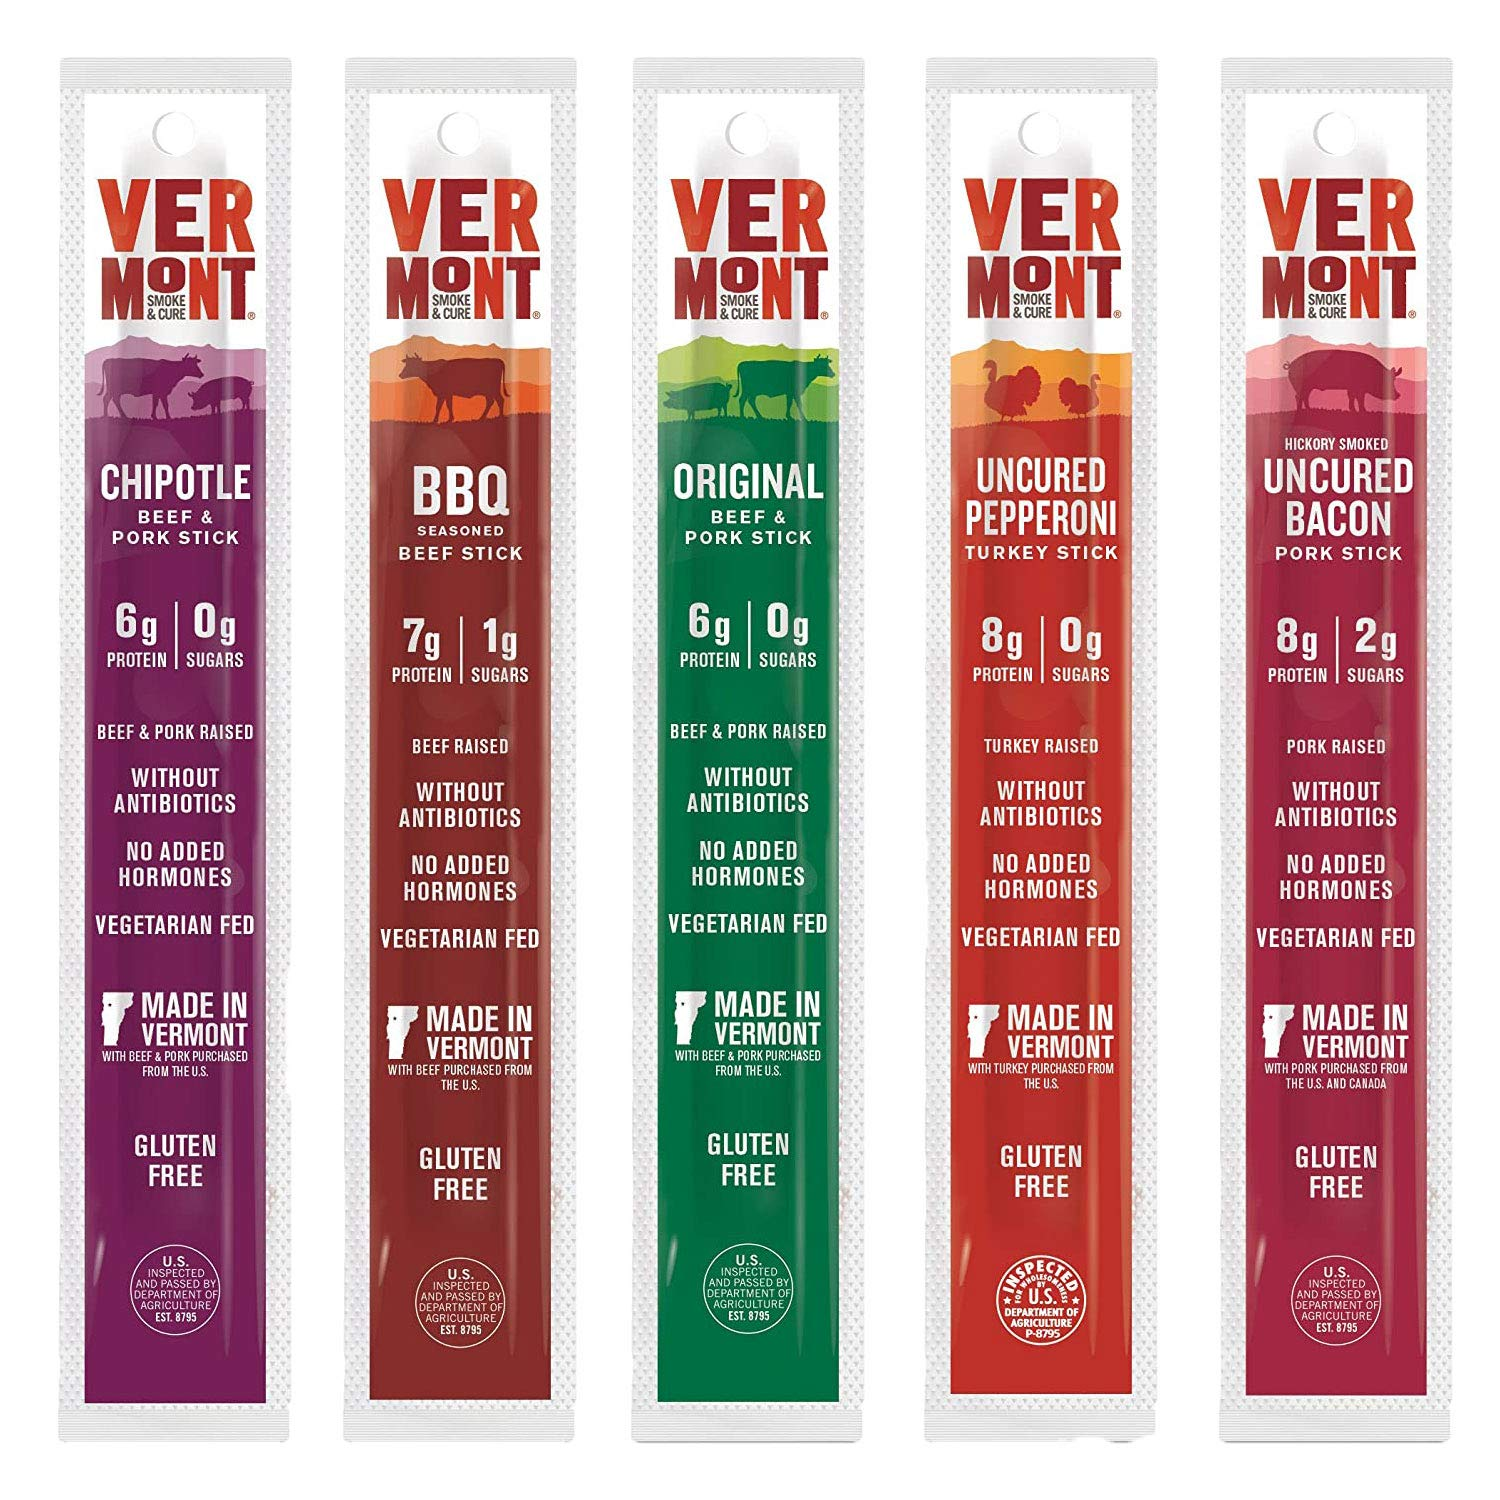 Vermont Smoke & Cure Jerky Sticks - Beef, Pork, Turkey - Variety Pack of 20 (1 ounce sticks) - Keto Snack, High Protein, Low Sugar